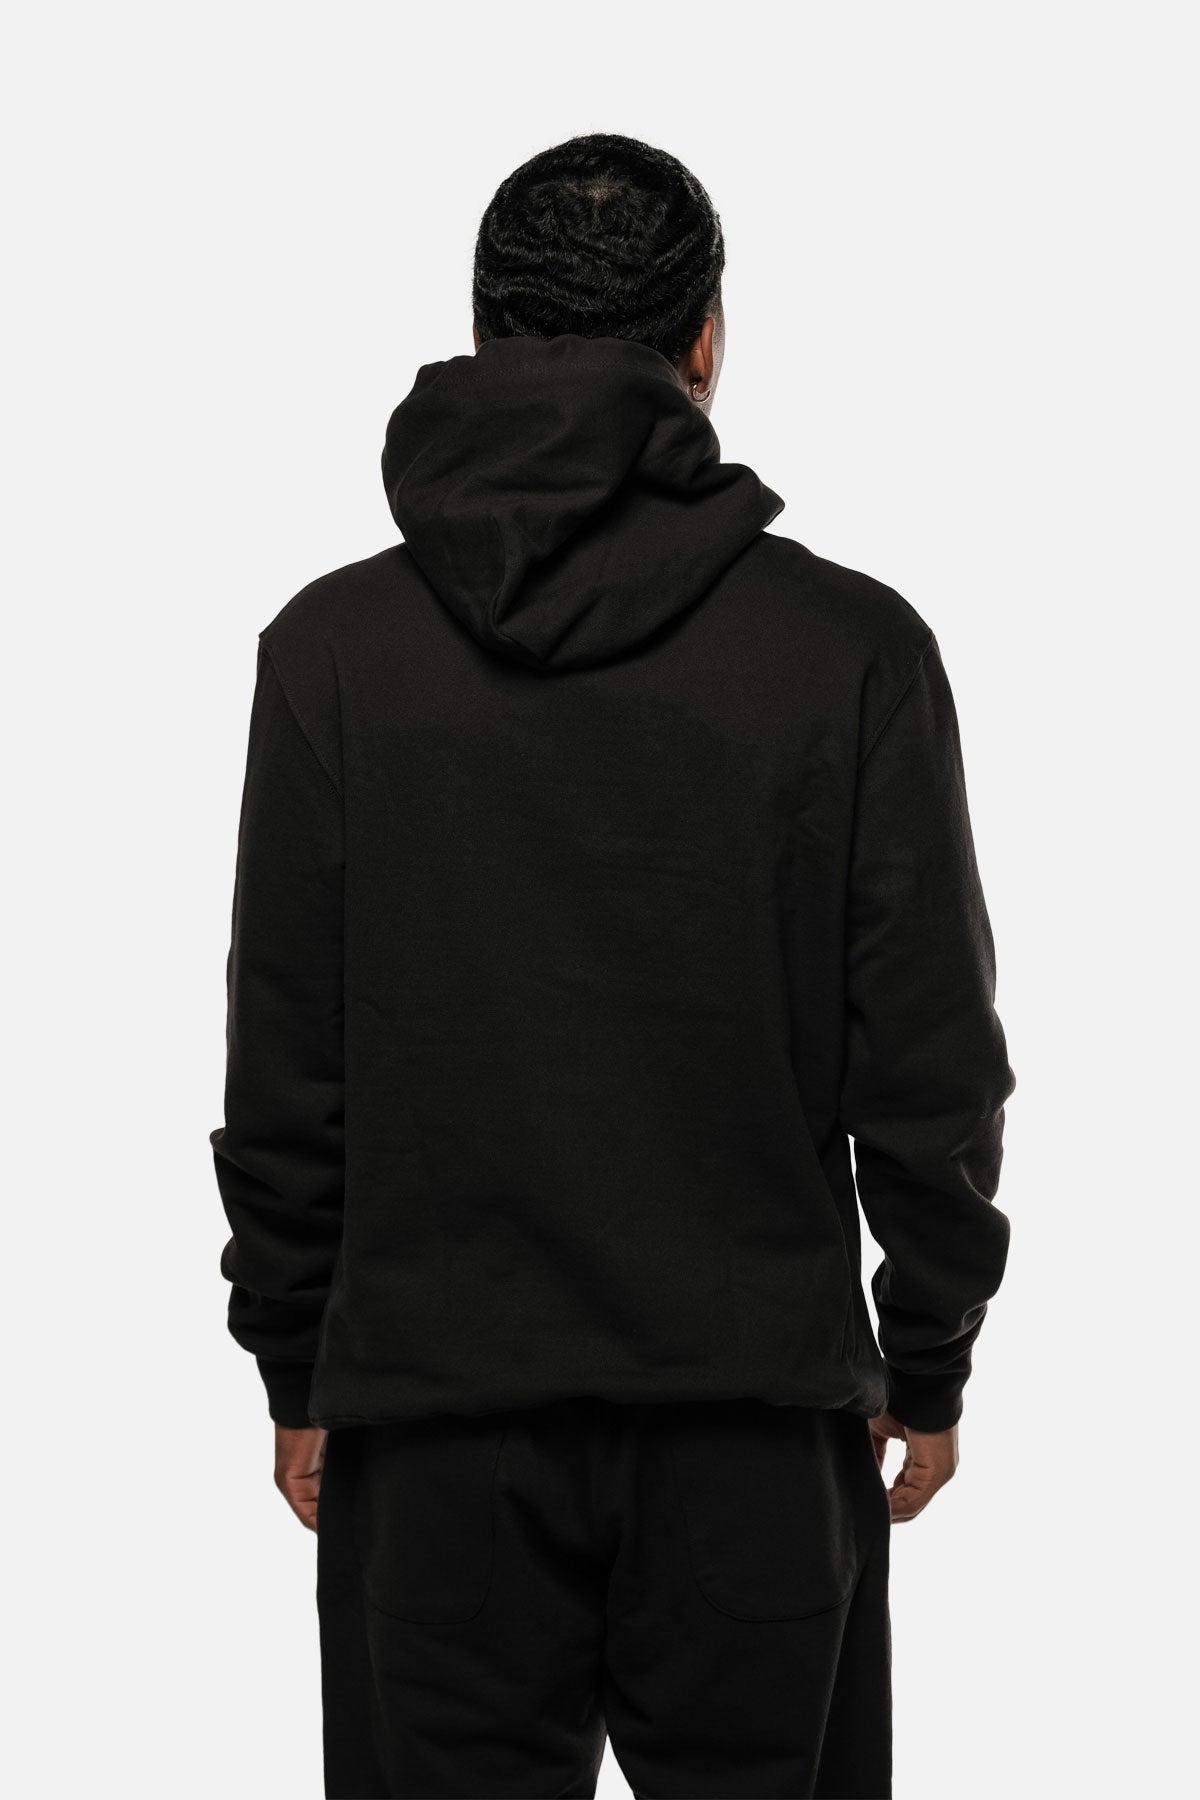 MORTON AVE HOODIE IN BLACK - Fortune Goods